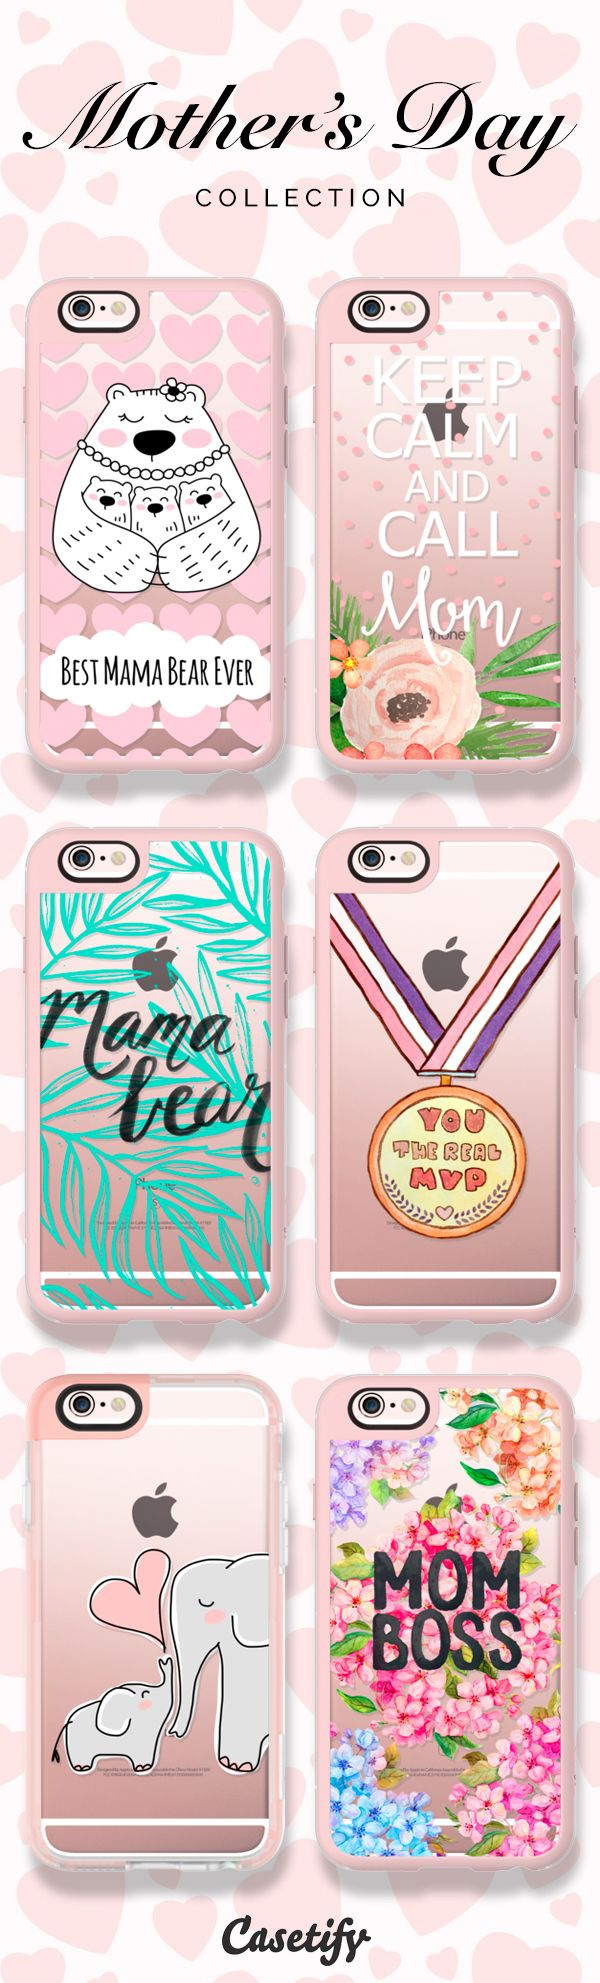 Mother's Day is just around the corner! Gift your mum with these cases: https://www.casetify.com/artworks/Al7QJnTTyr | @casetify